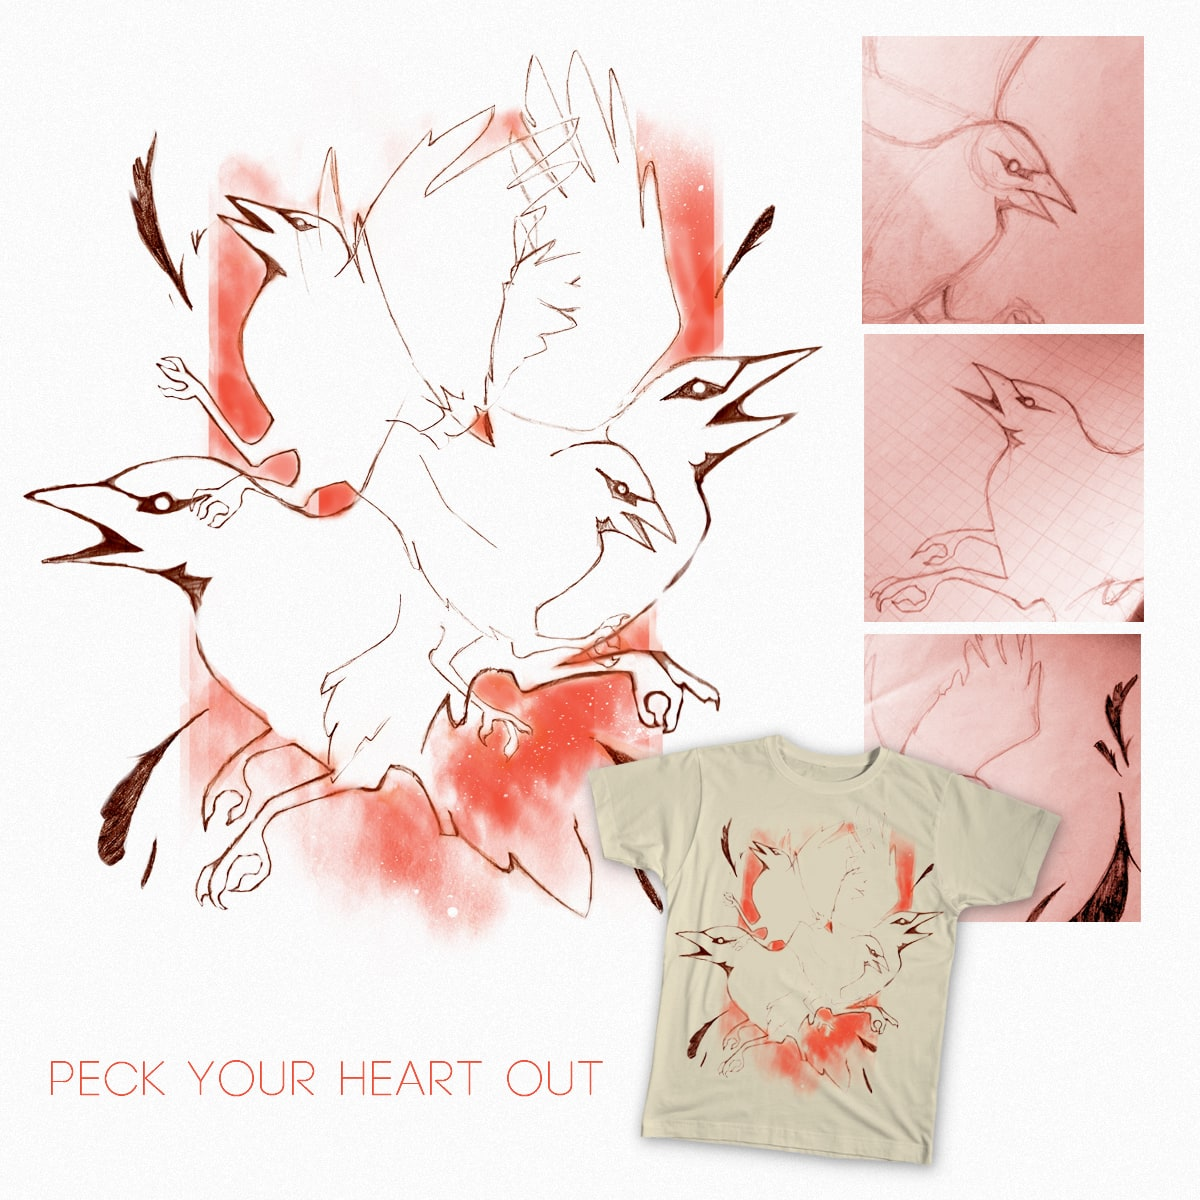 PeckYourHeartOut by zombiemongai on Threadless